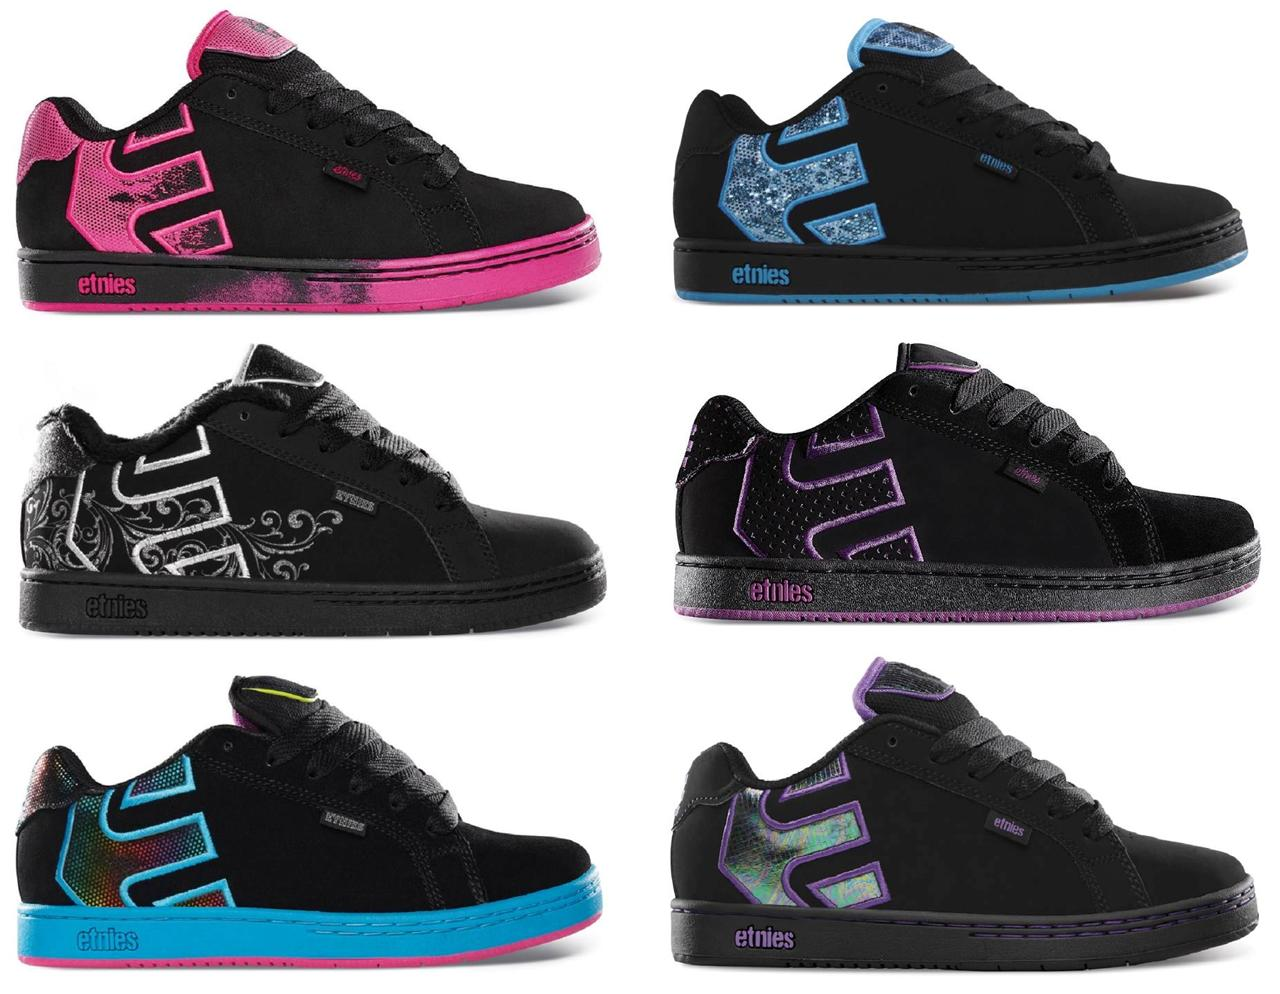 ETNIES-FADER-LADIES-SHOES-WOMENS-CASUAL-SNEAKERS-AUSTRALIAN-SELLER-FAST-DELIVERY